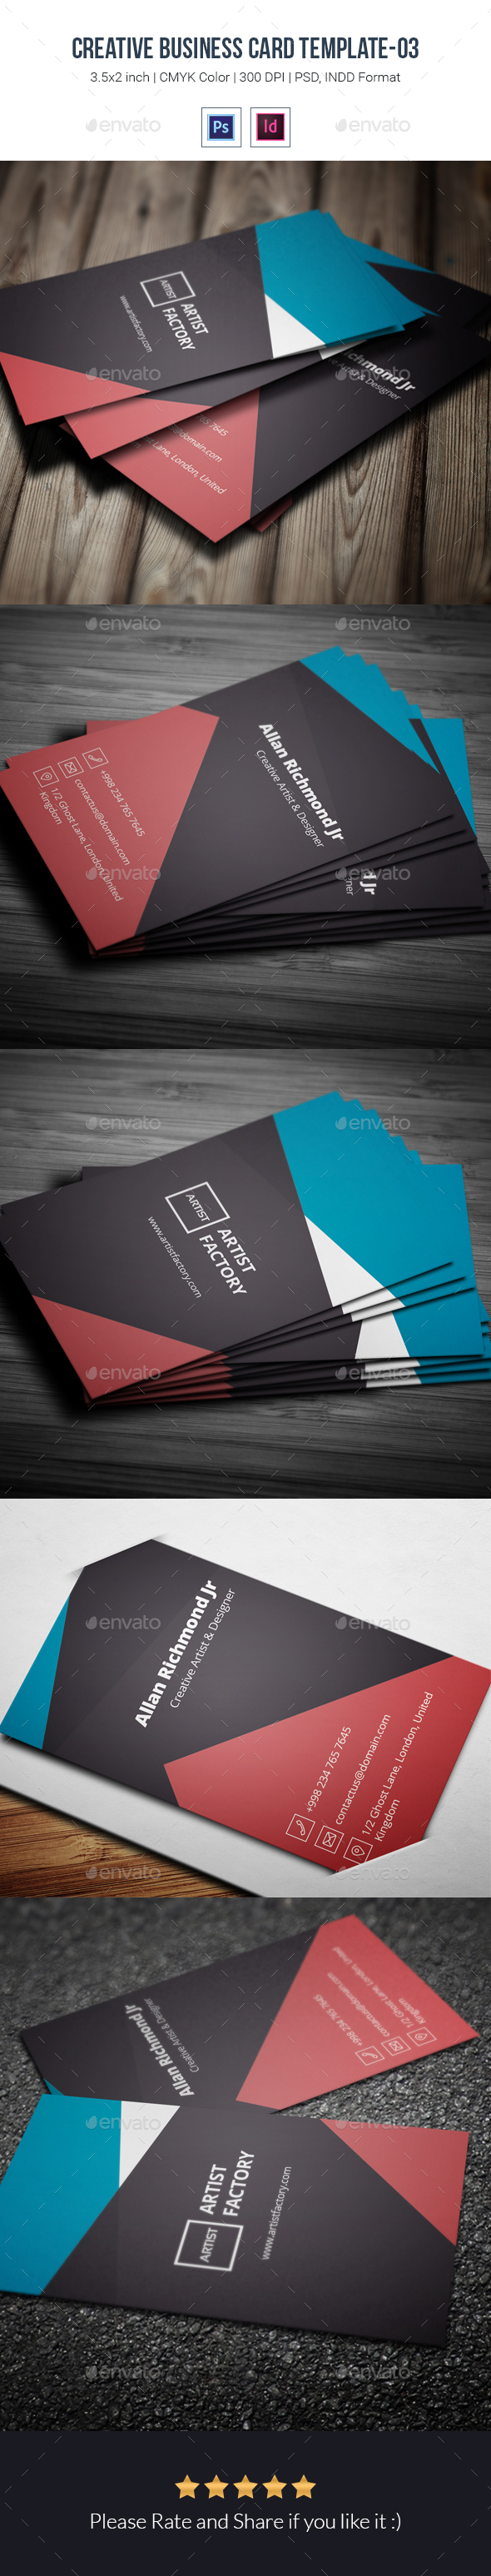 Creative Business Card Template-03 - Creative Business Cards